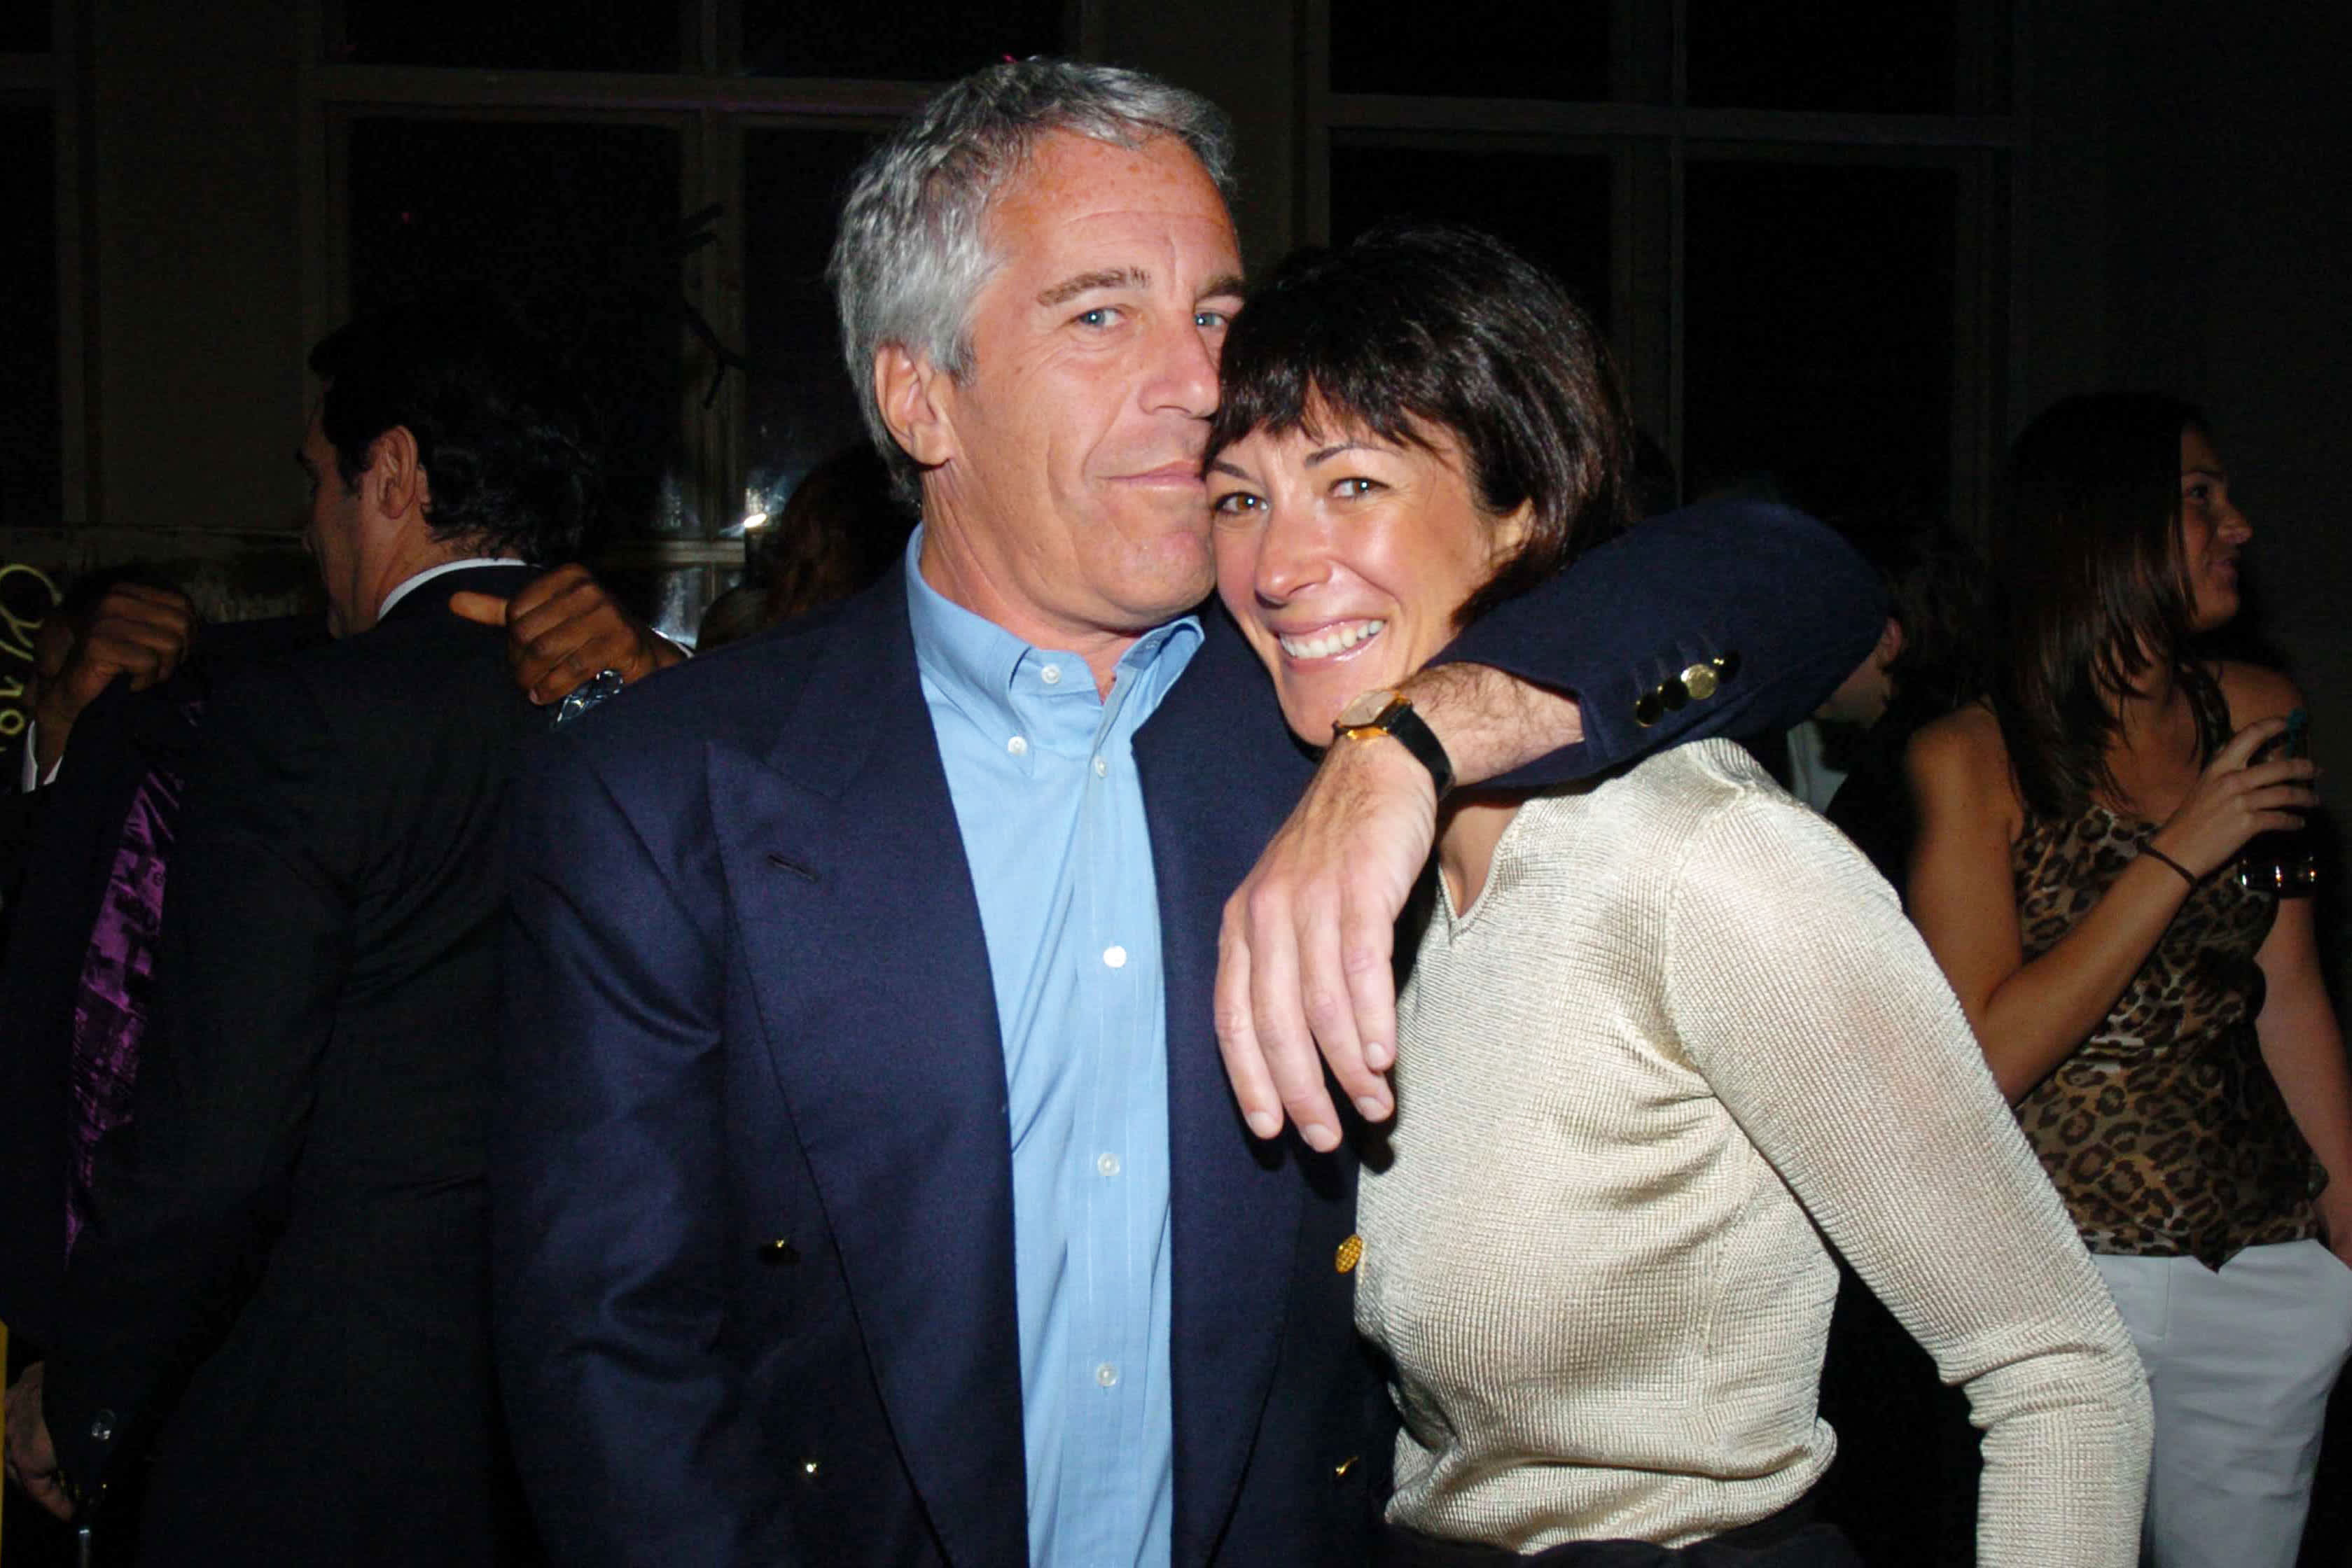 Jeffrey Epstein rape accuser Jennifer Araoz sues 'enablers' Ghislaine Maxwell, 3 others